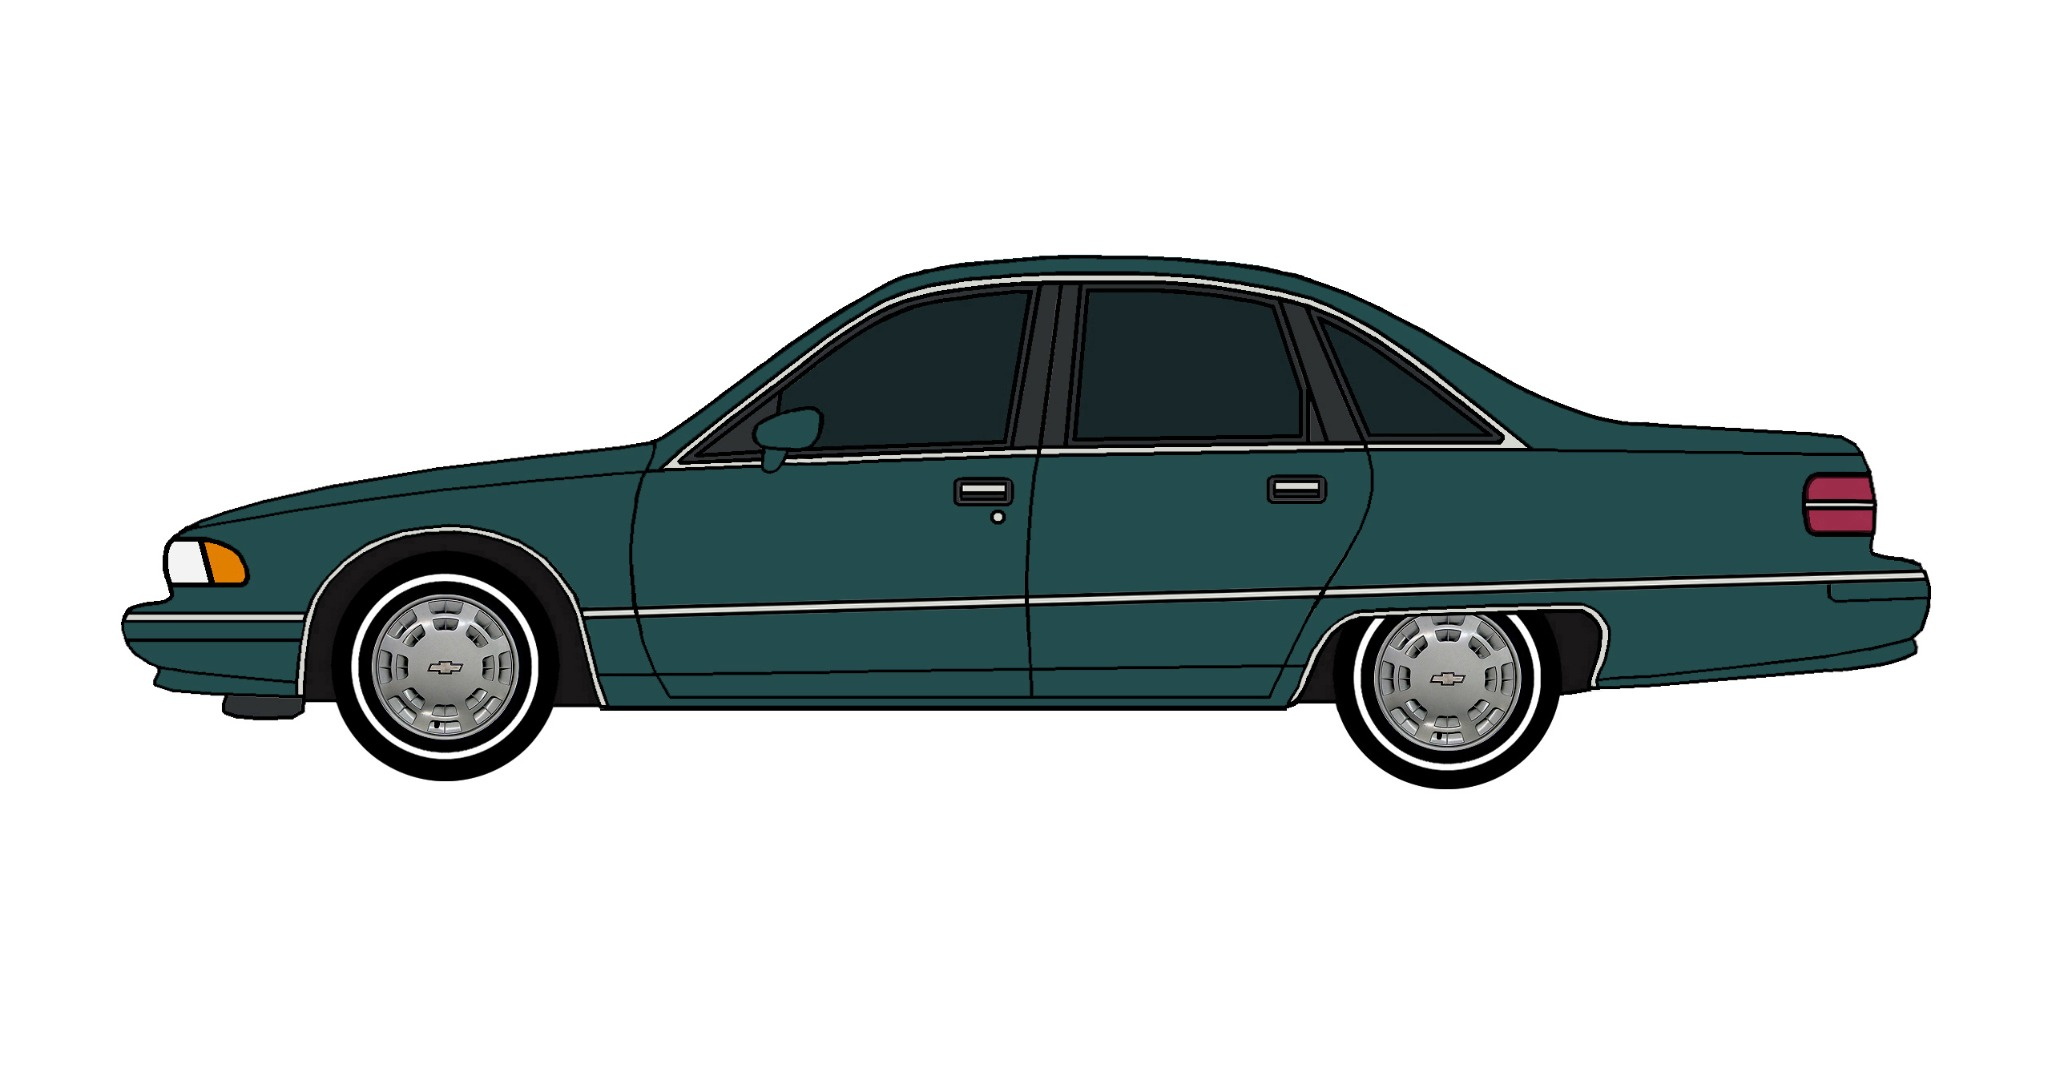 1991 Chevy Caprice TEAL